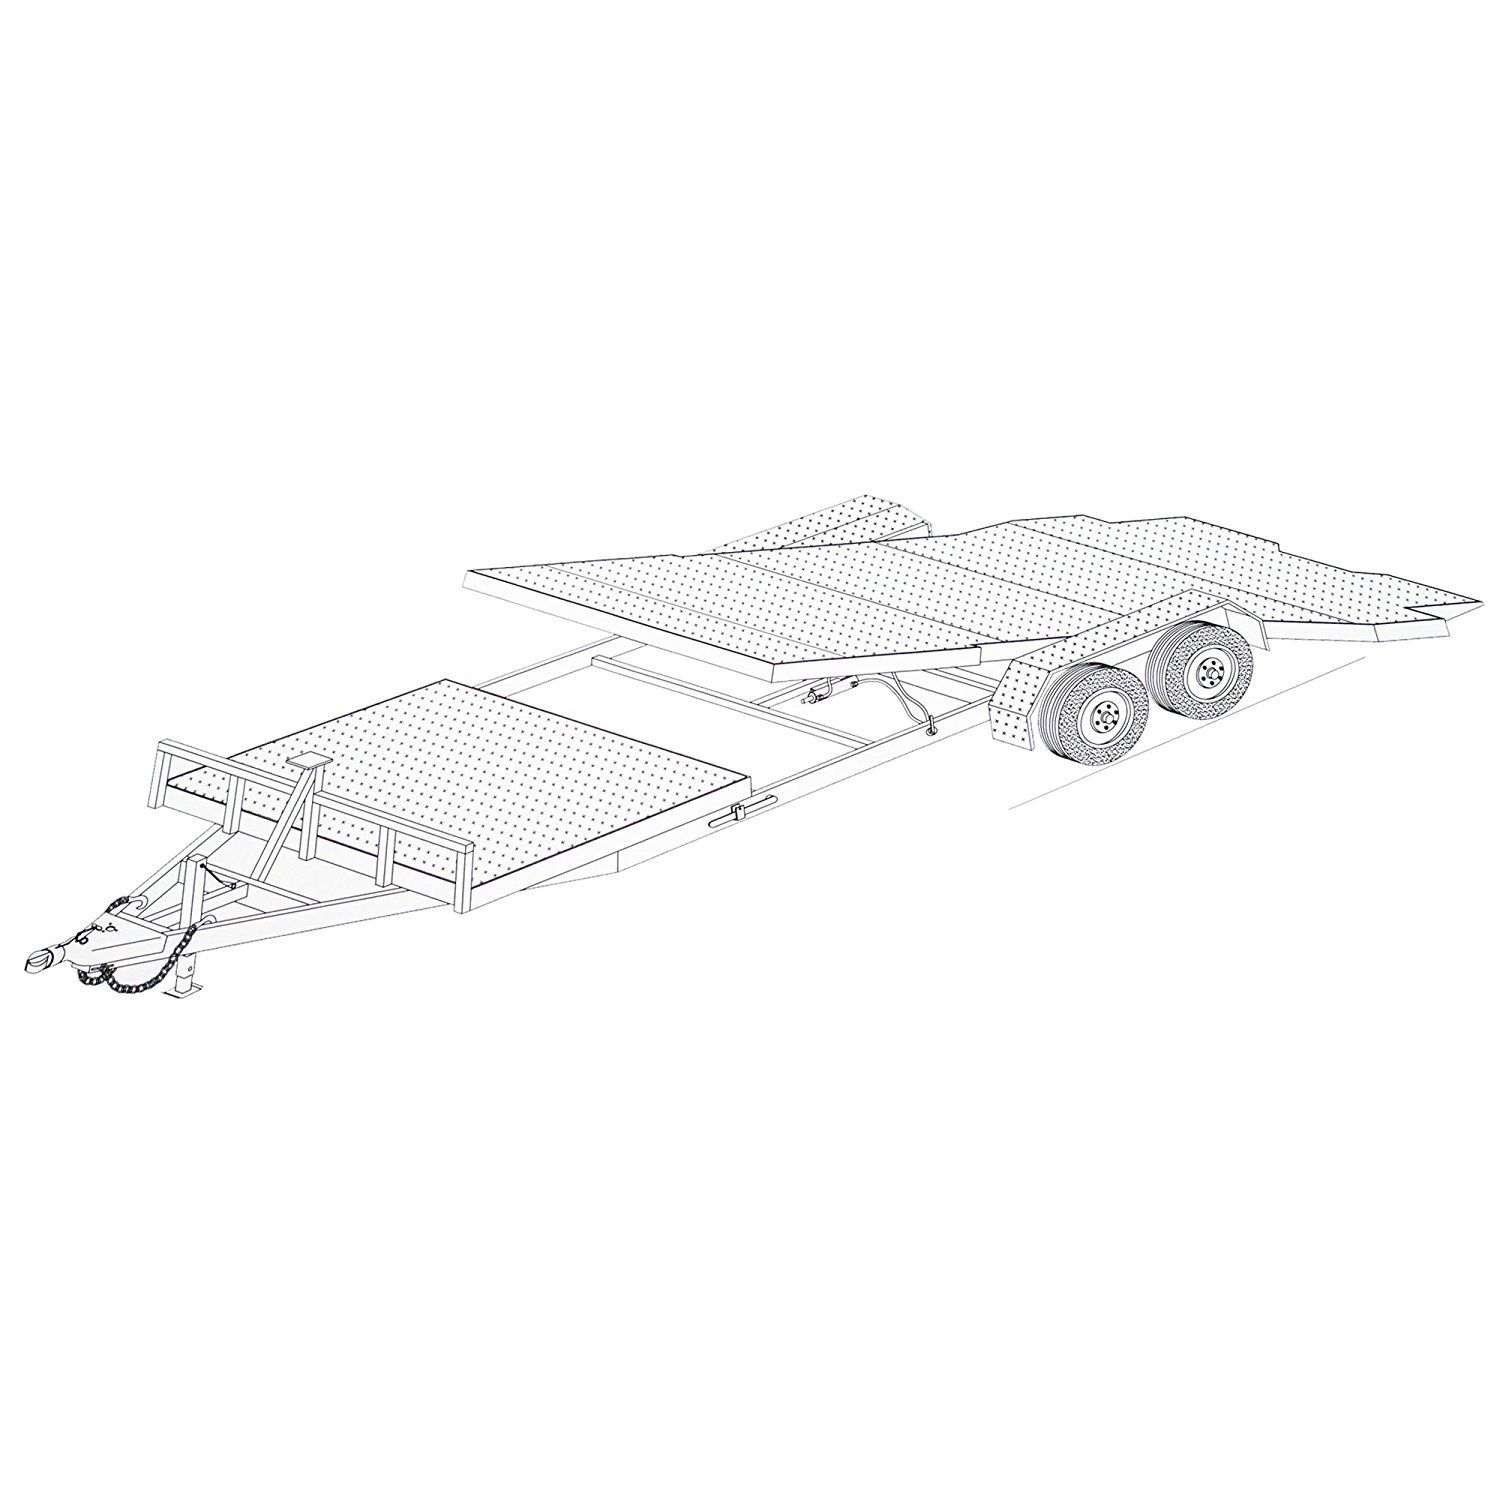 24 gravity tilt car hauler trailer plans blueprints model 24gt ebay rh ebay com